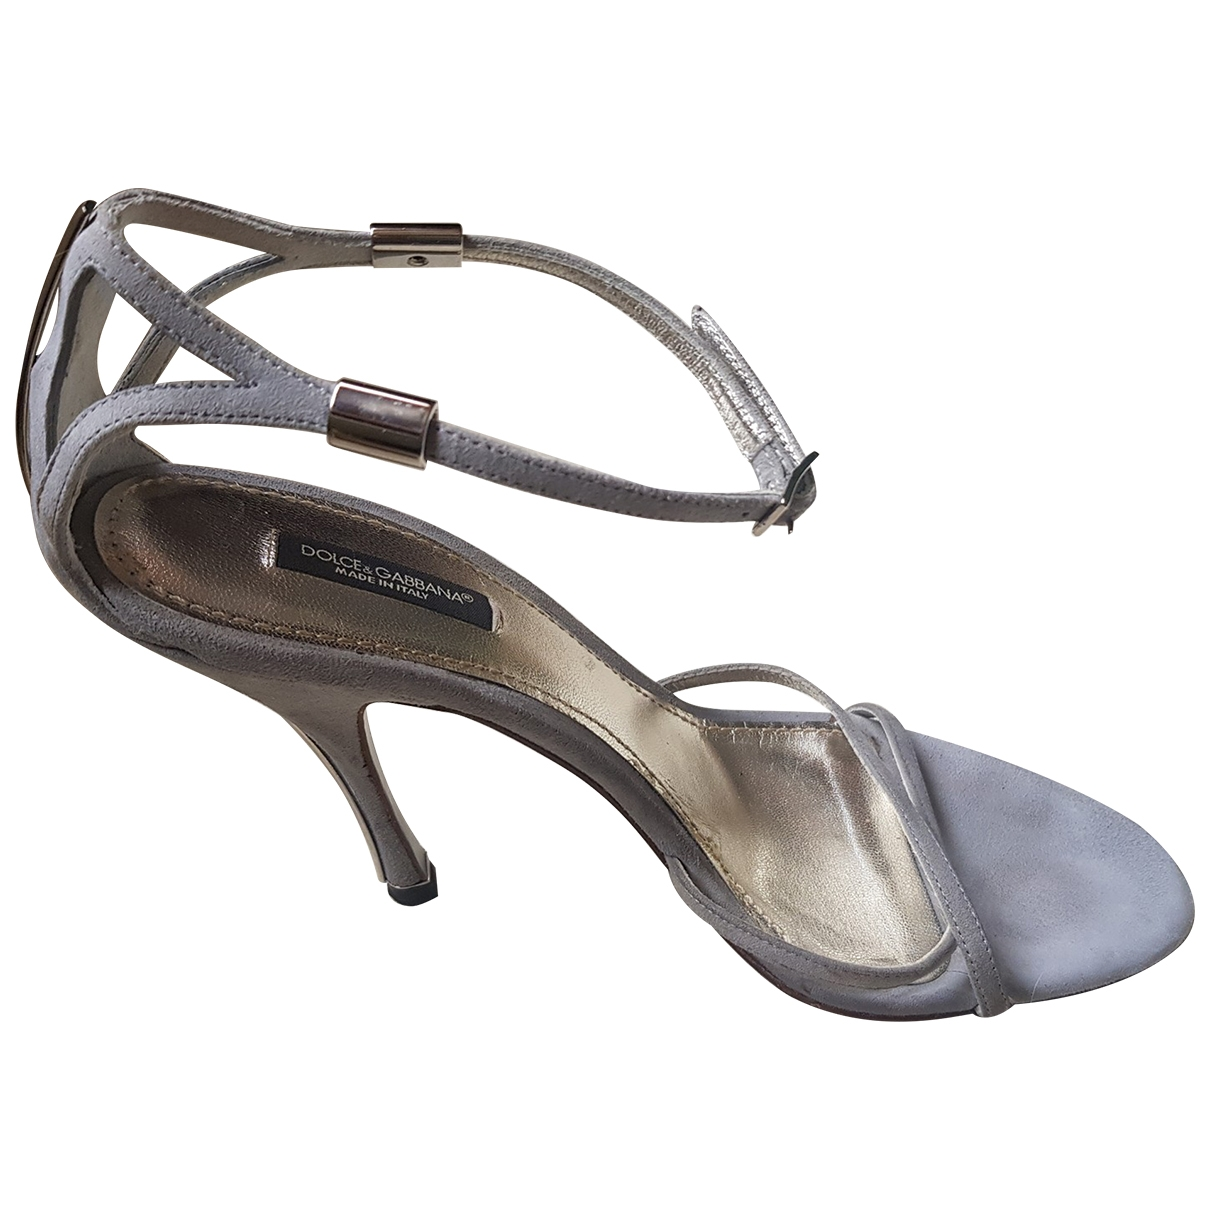 Dolce & Gabbana \N Silver Suede Sandals for Women 39 EU